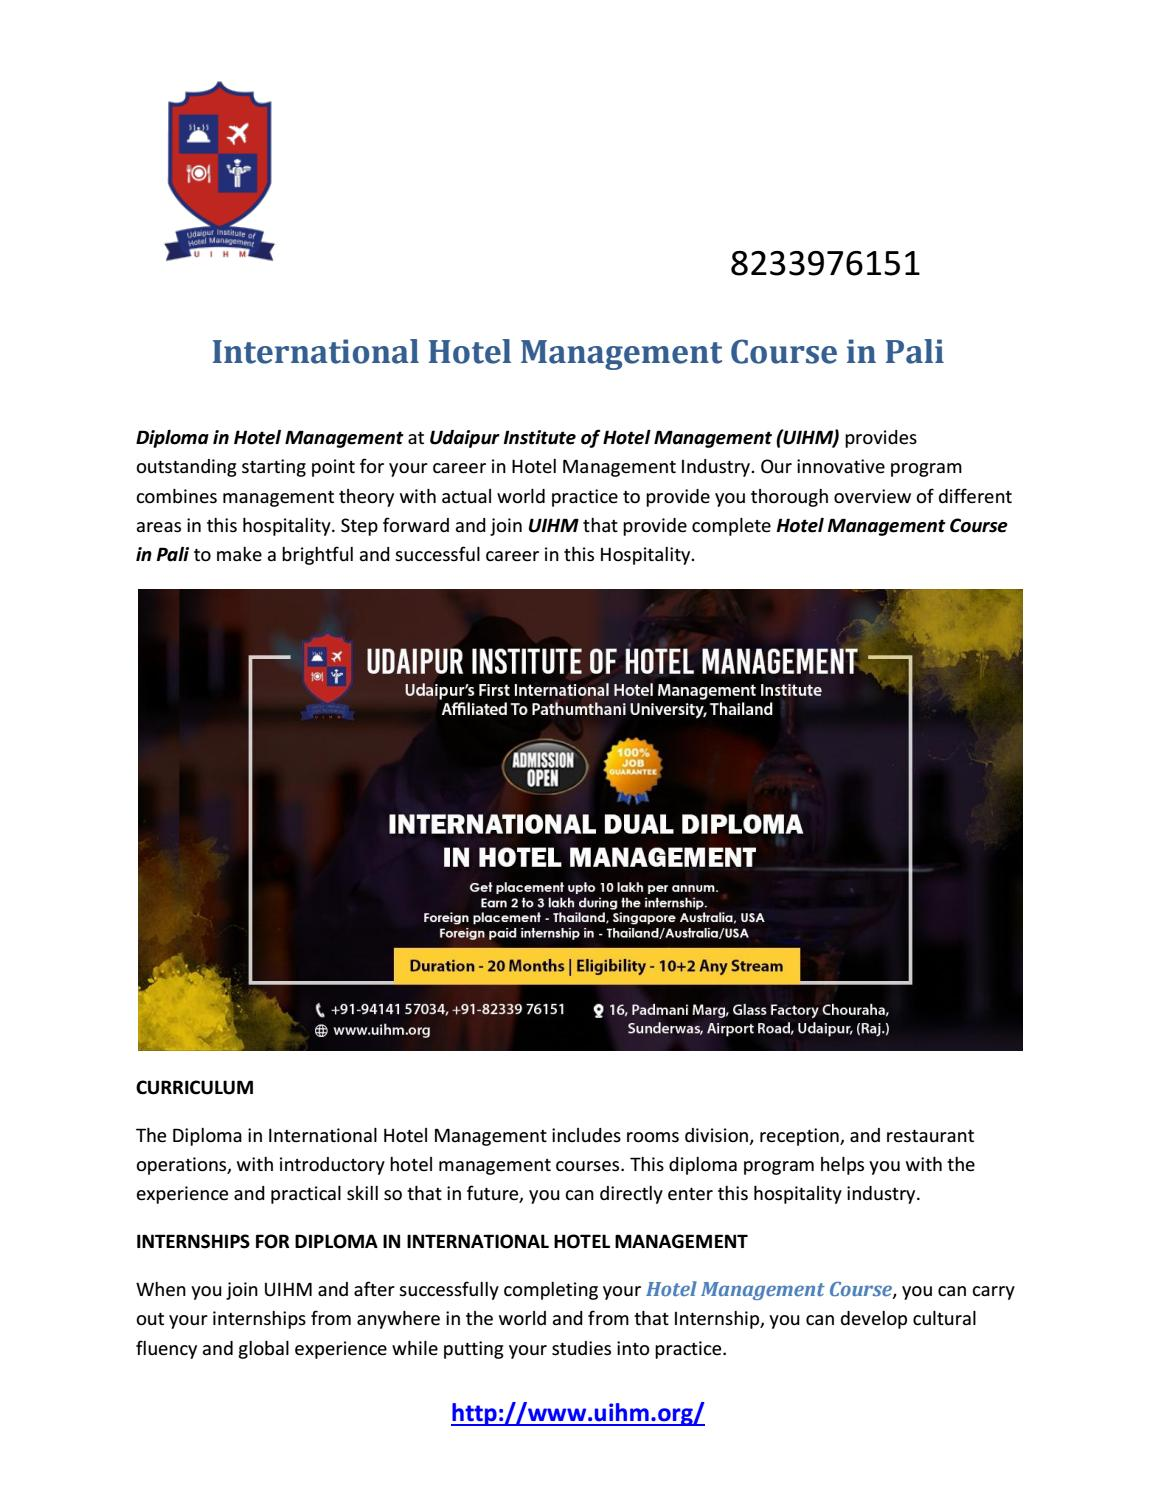 International Hotel Management Course in Pali by